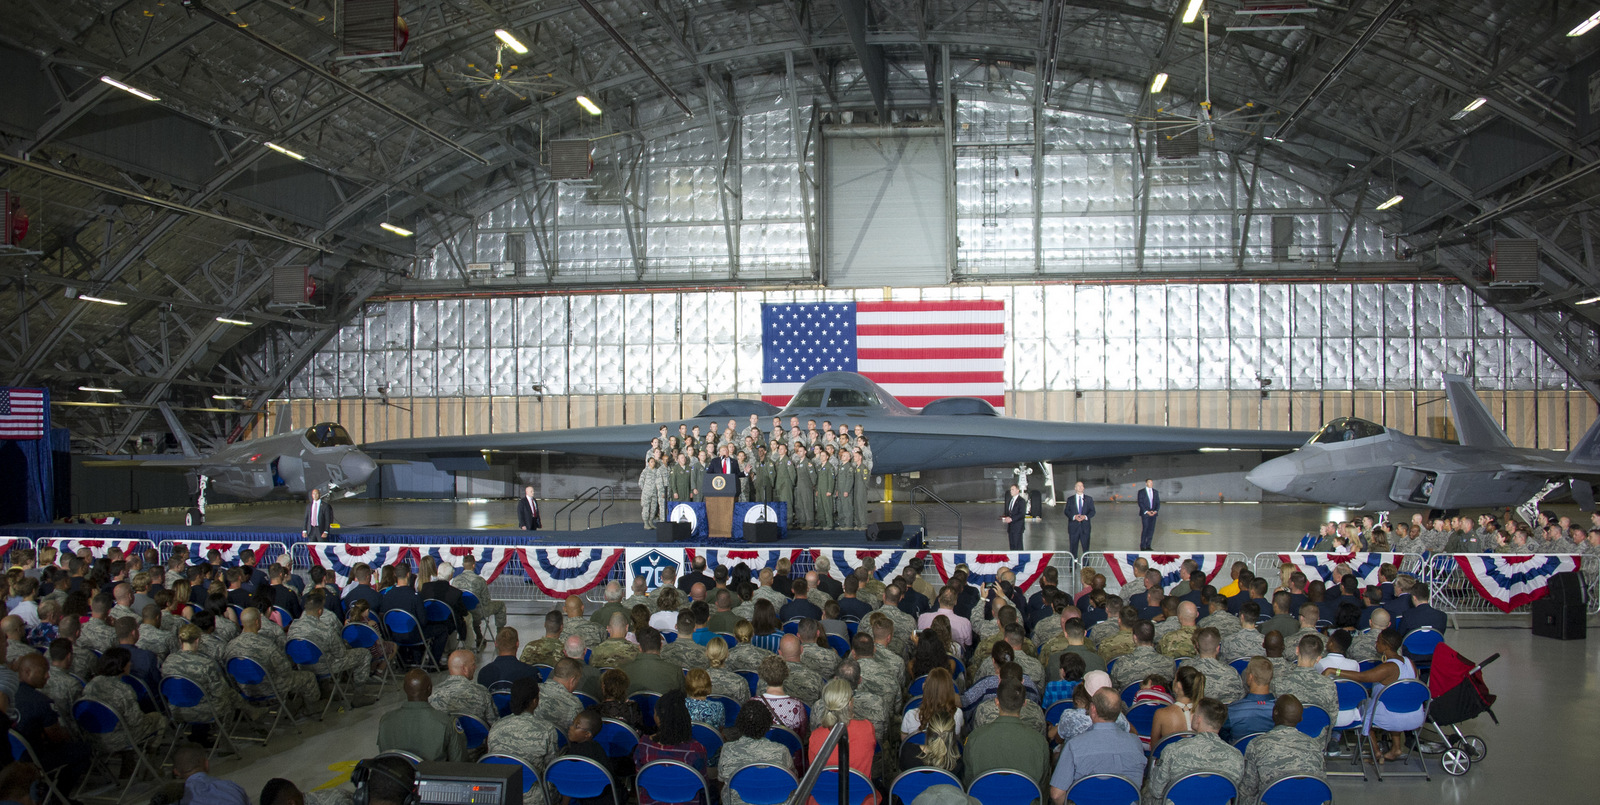 United States President Donald J. Trump delivers remarks to military personnel and families in a hanger at Joint Base Andrews in Maryland on, September 15, 2017.  He visited JBA to commemorate the 70th anniversary of the US Air Force.  In the background behind the group, from left is a F-35 Joint Strike Fighter, a B-2 Stealth Bomber and a F-22 fighter. (AP Photo)